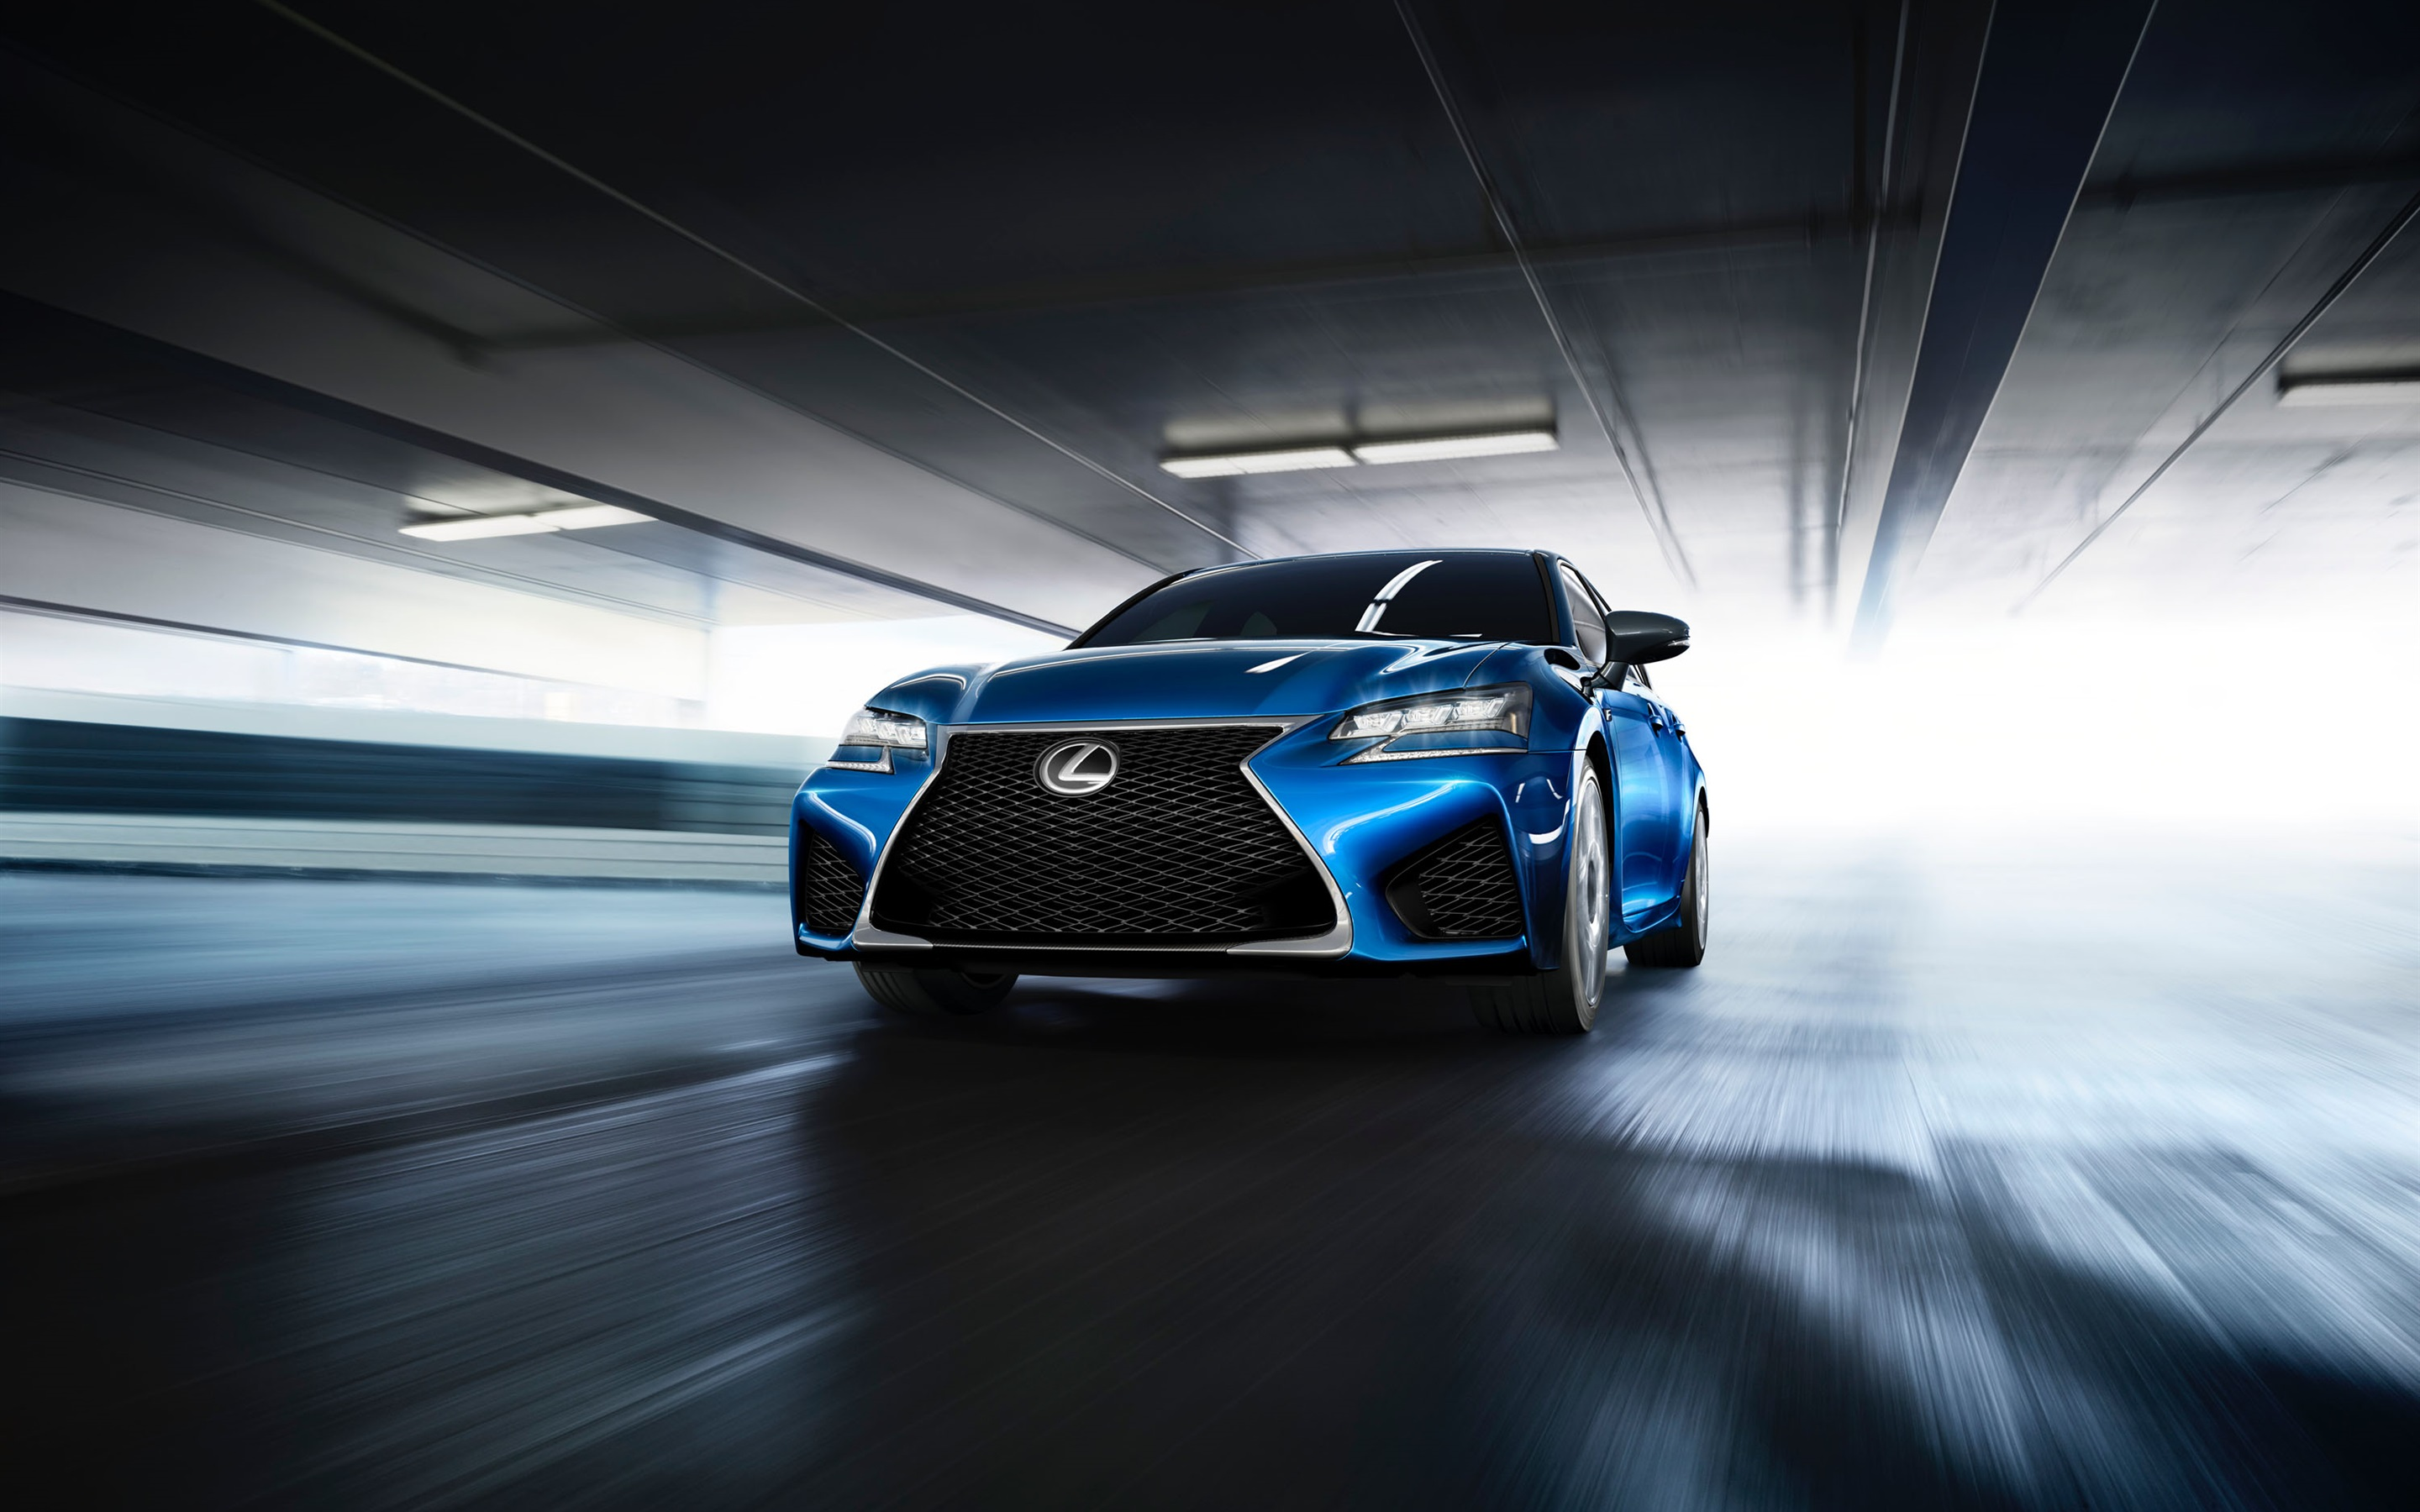 Wallpaper Lexus Gs F Blue Car Front View And Speed 2880x1800 Hd